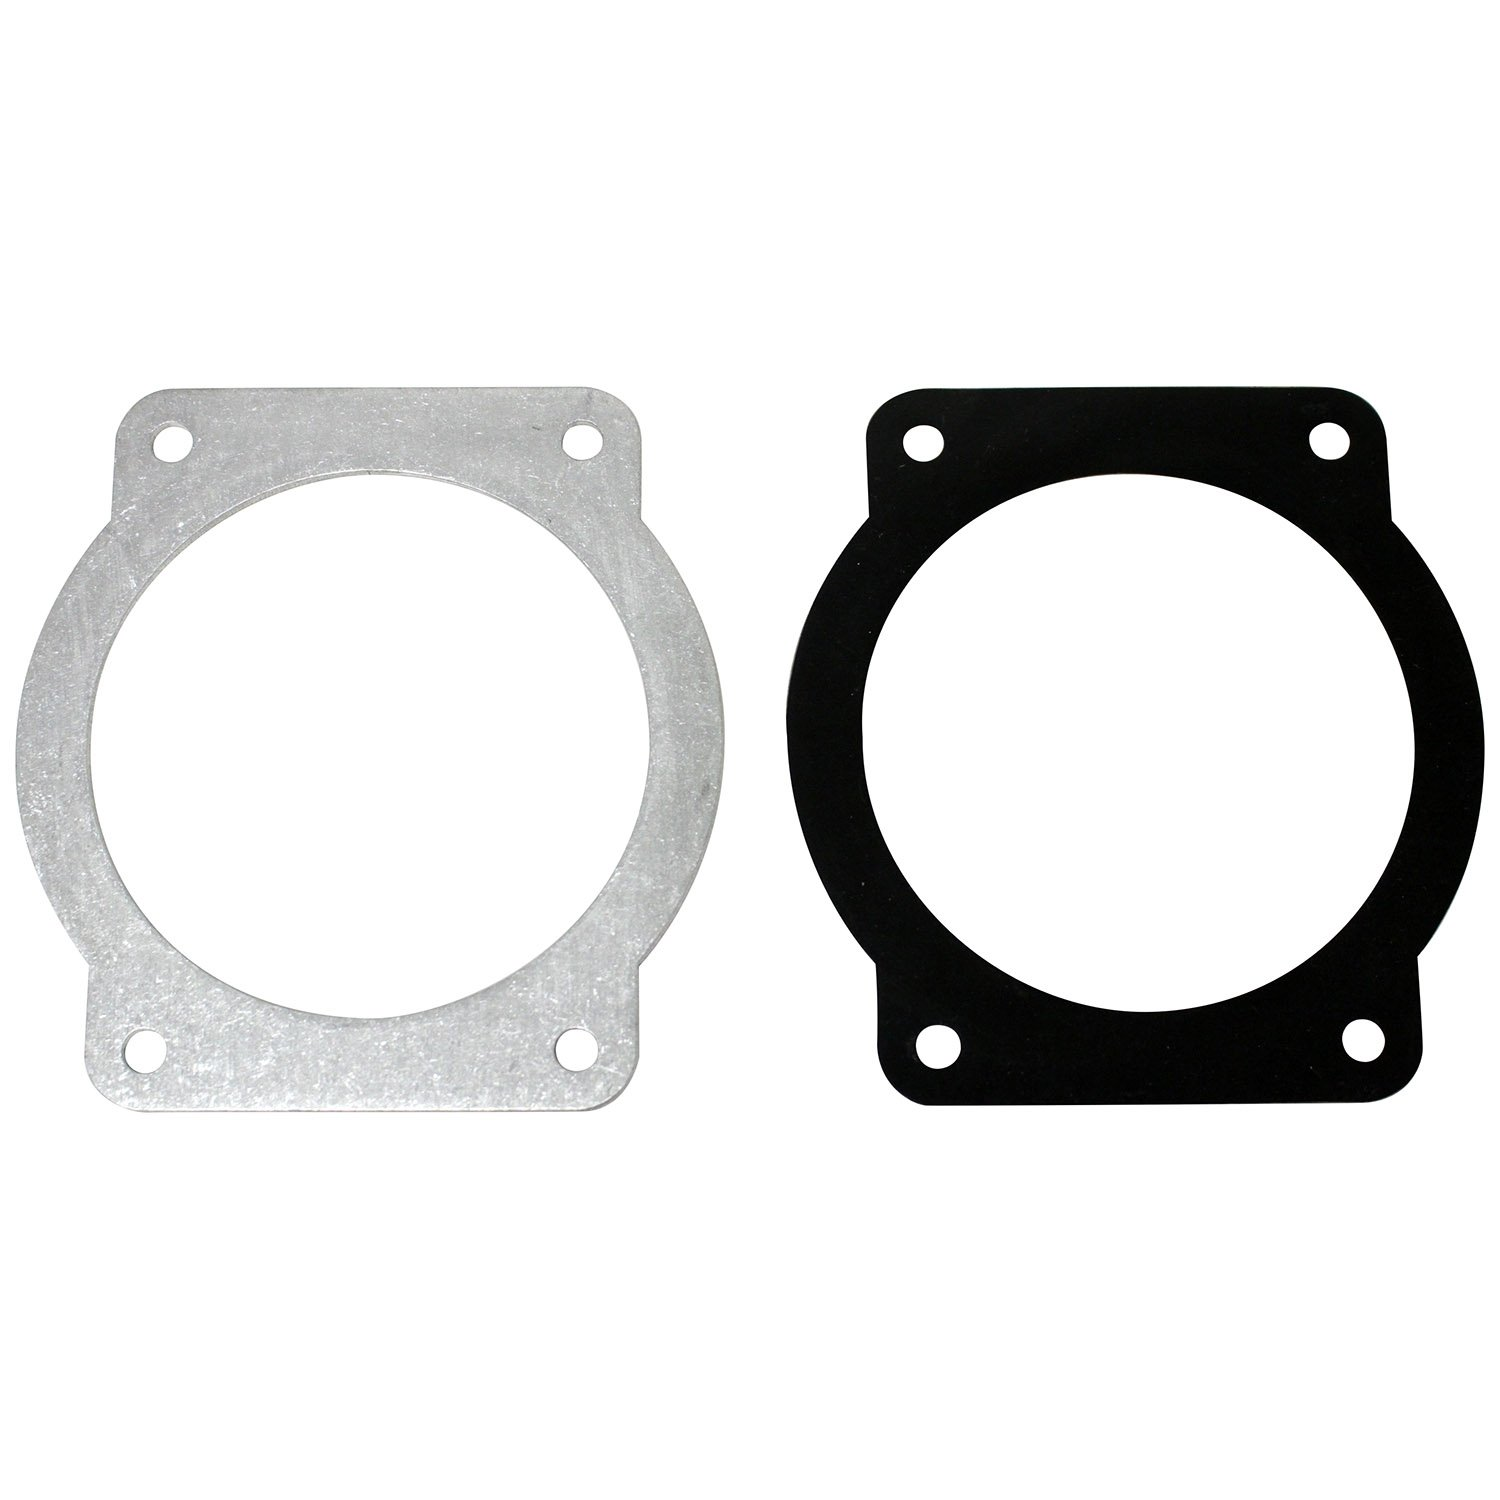 2704 - Throttlebody Sealing Plate Kit for Atomic Airforce for PN 2701 and PN 2702 Image